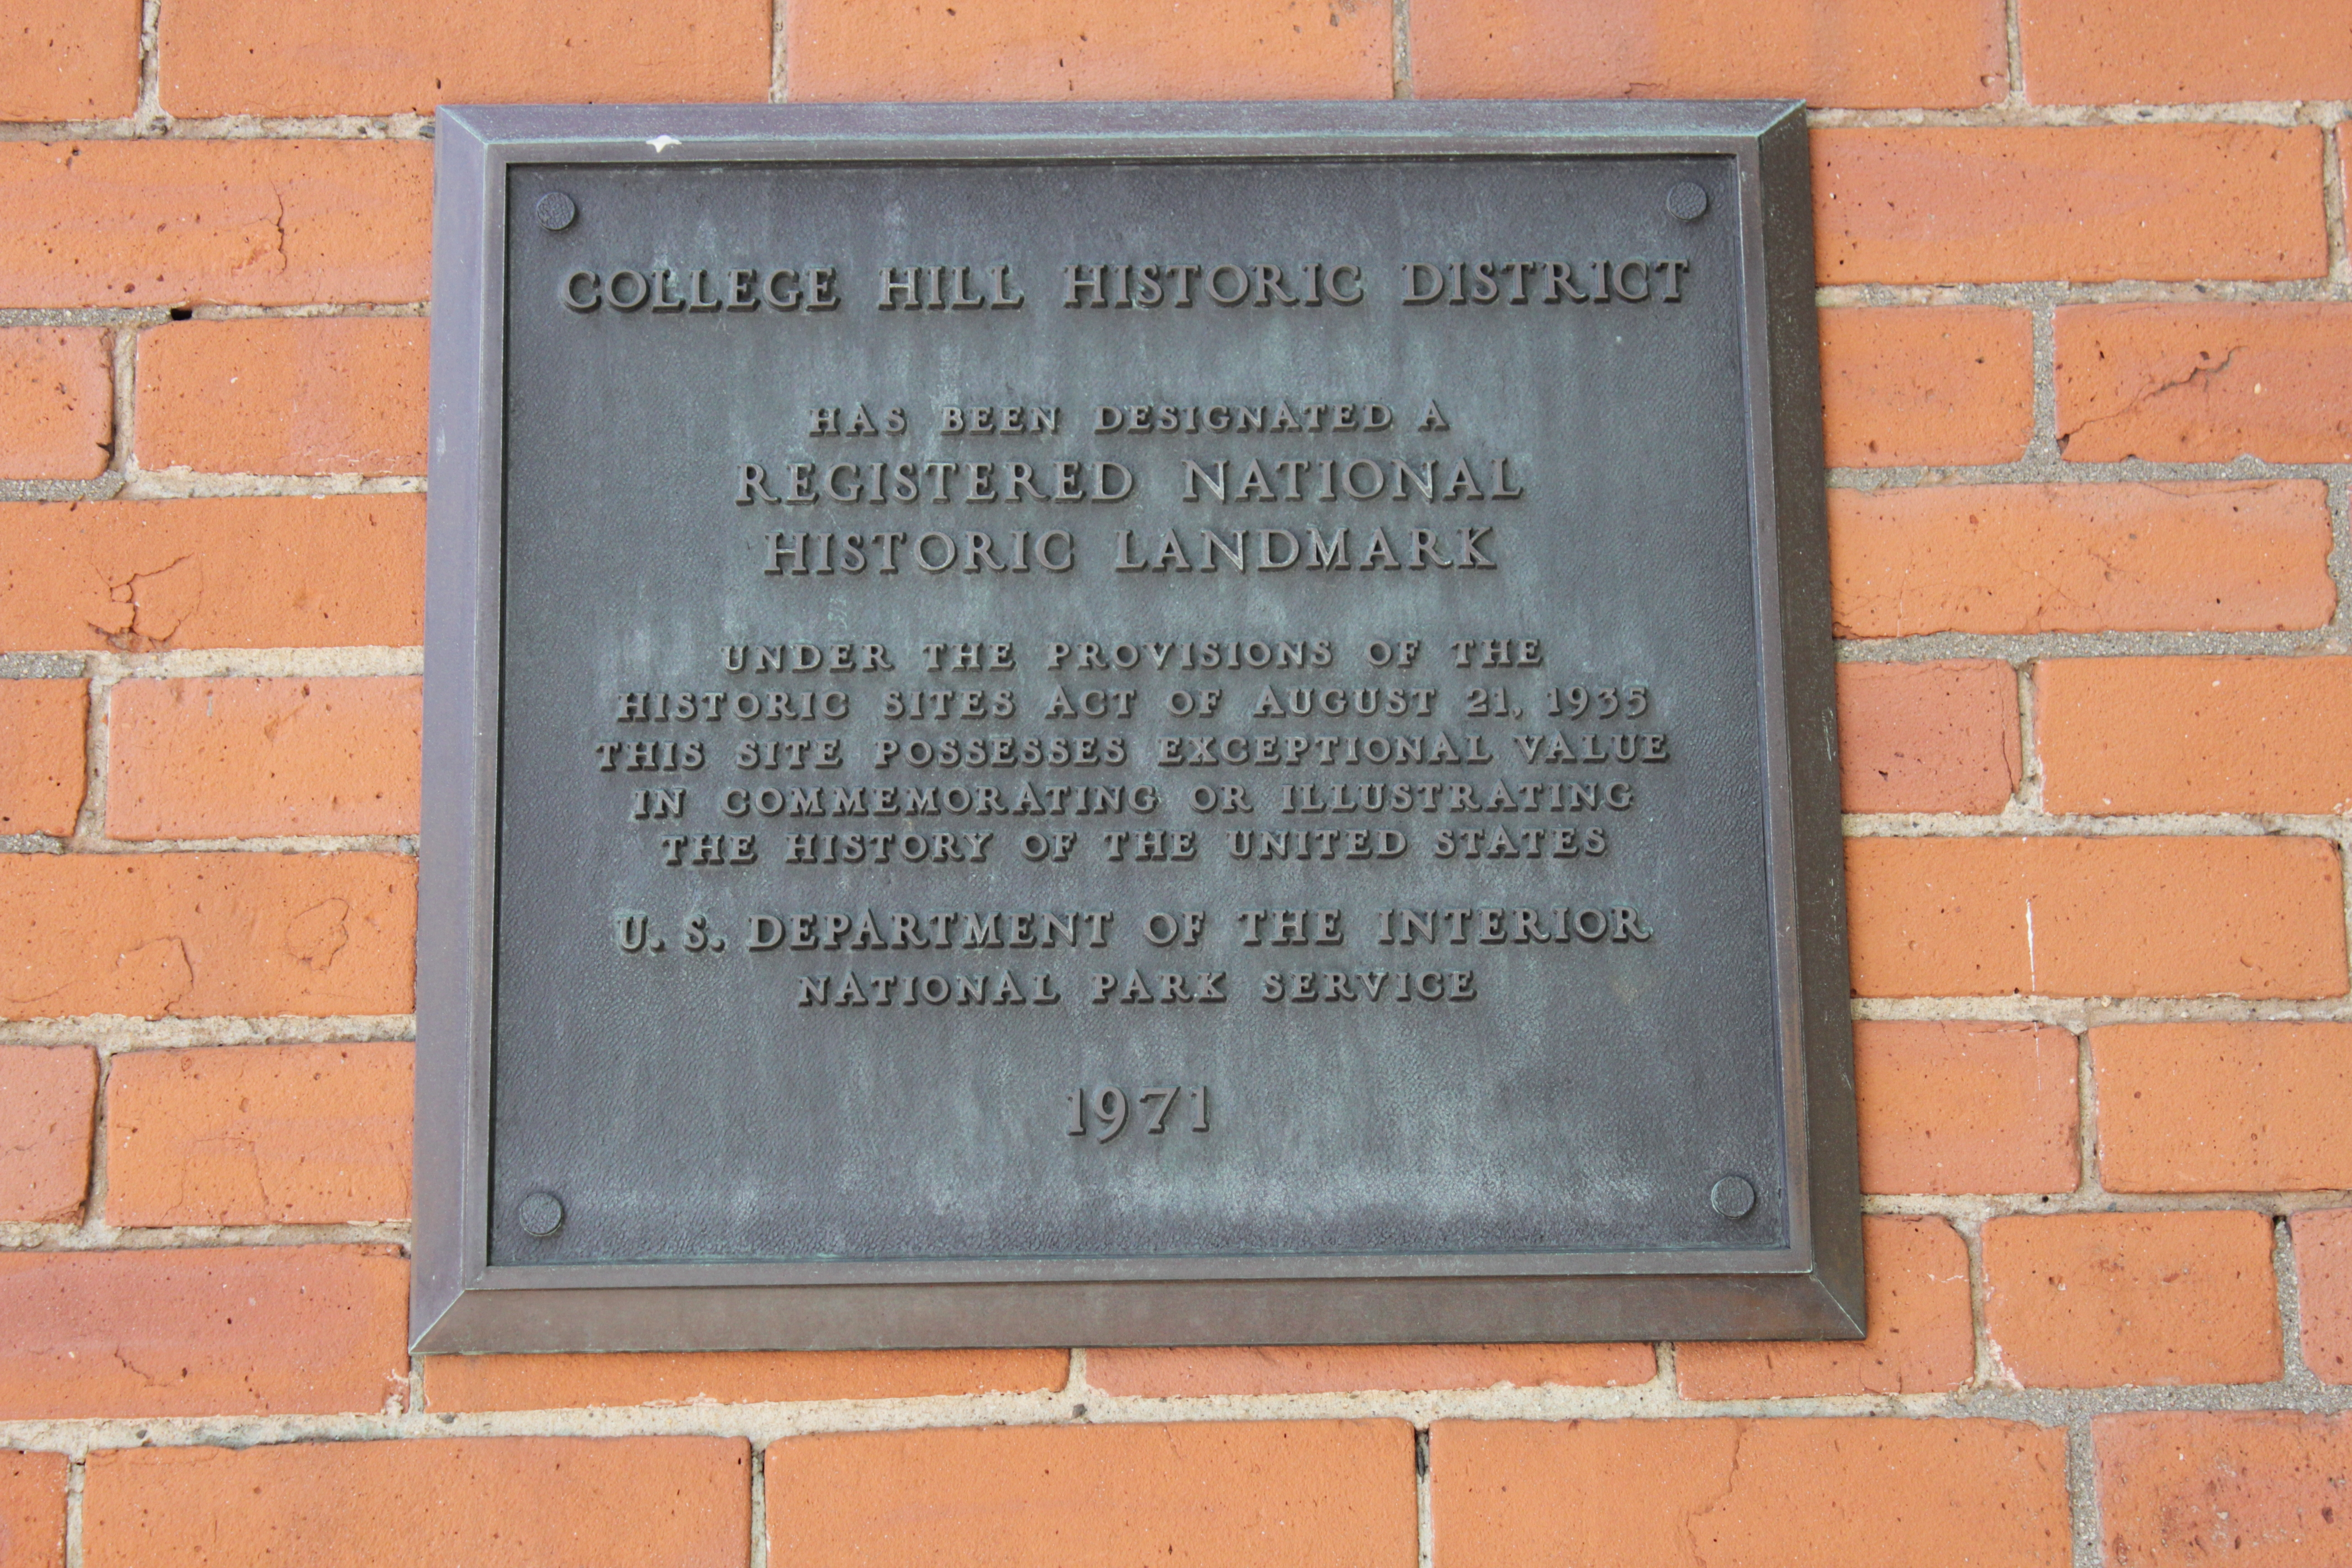 College Hill Historic District Marker